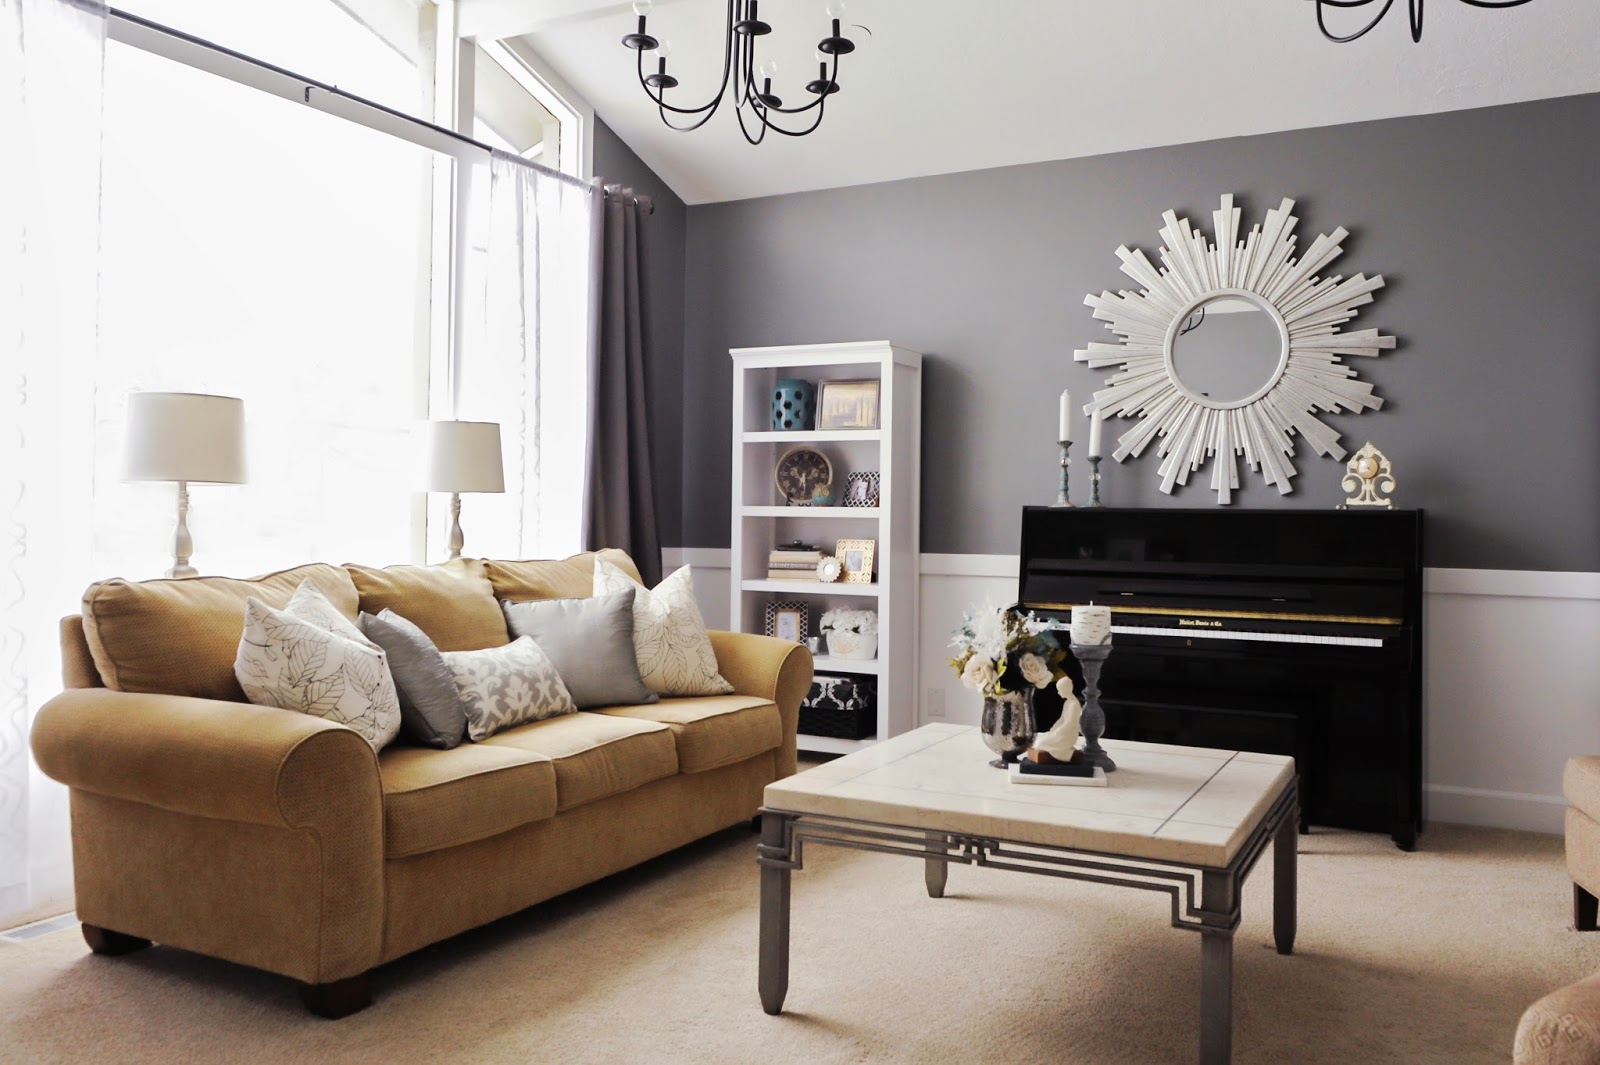 studio 7 interior design: client reveal:transitional chic formal